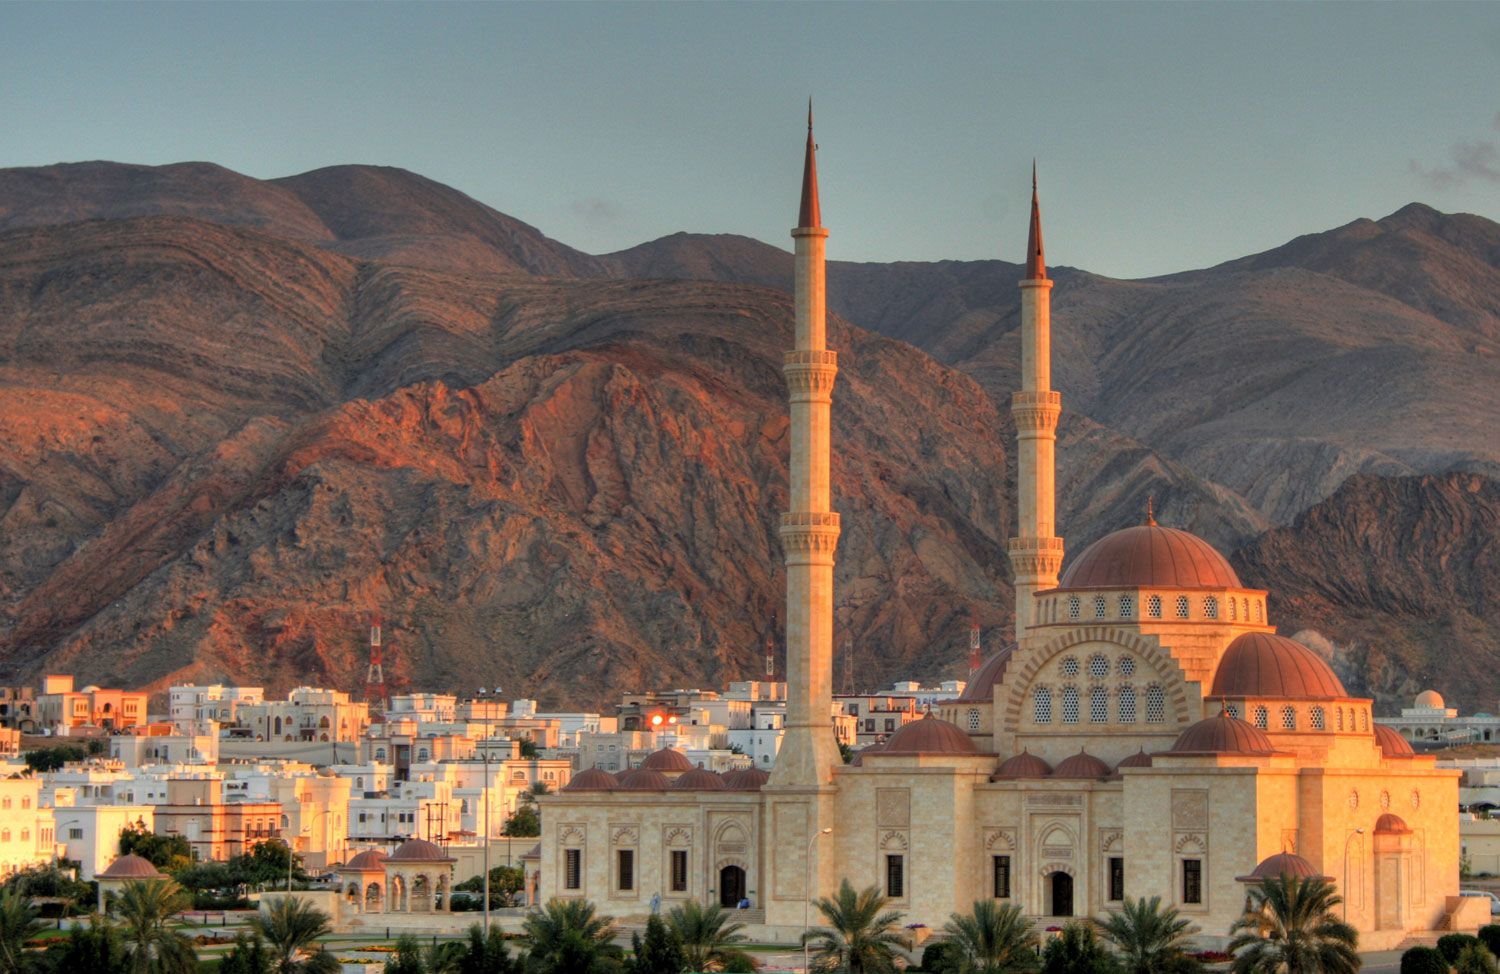 36 hours in muscat a quick guide to exploring the alluring capital of